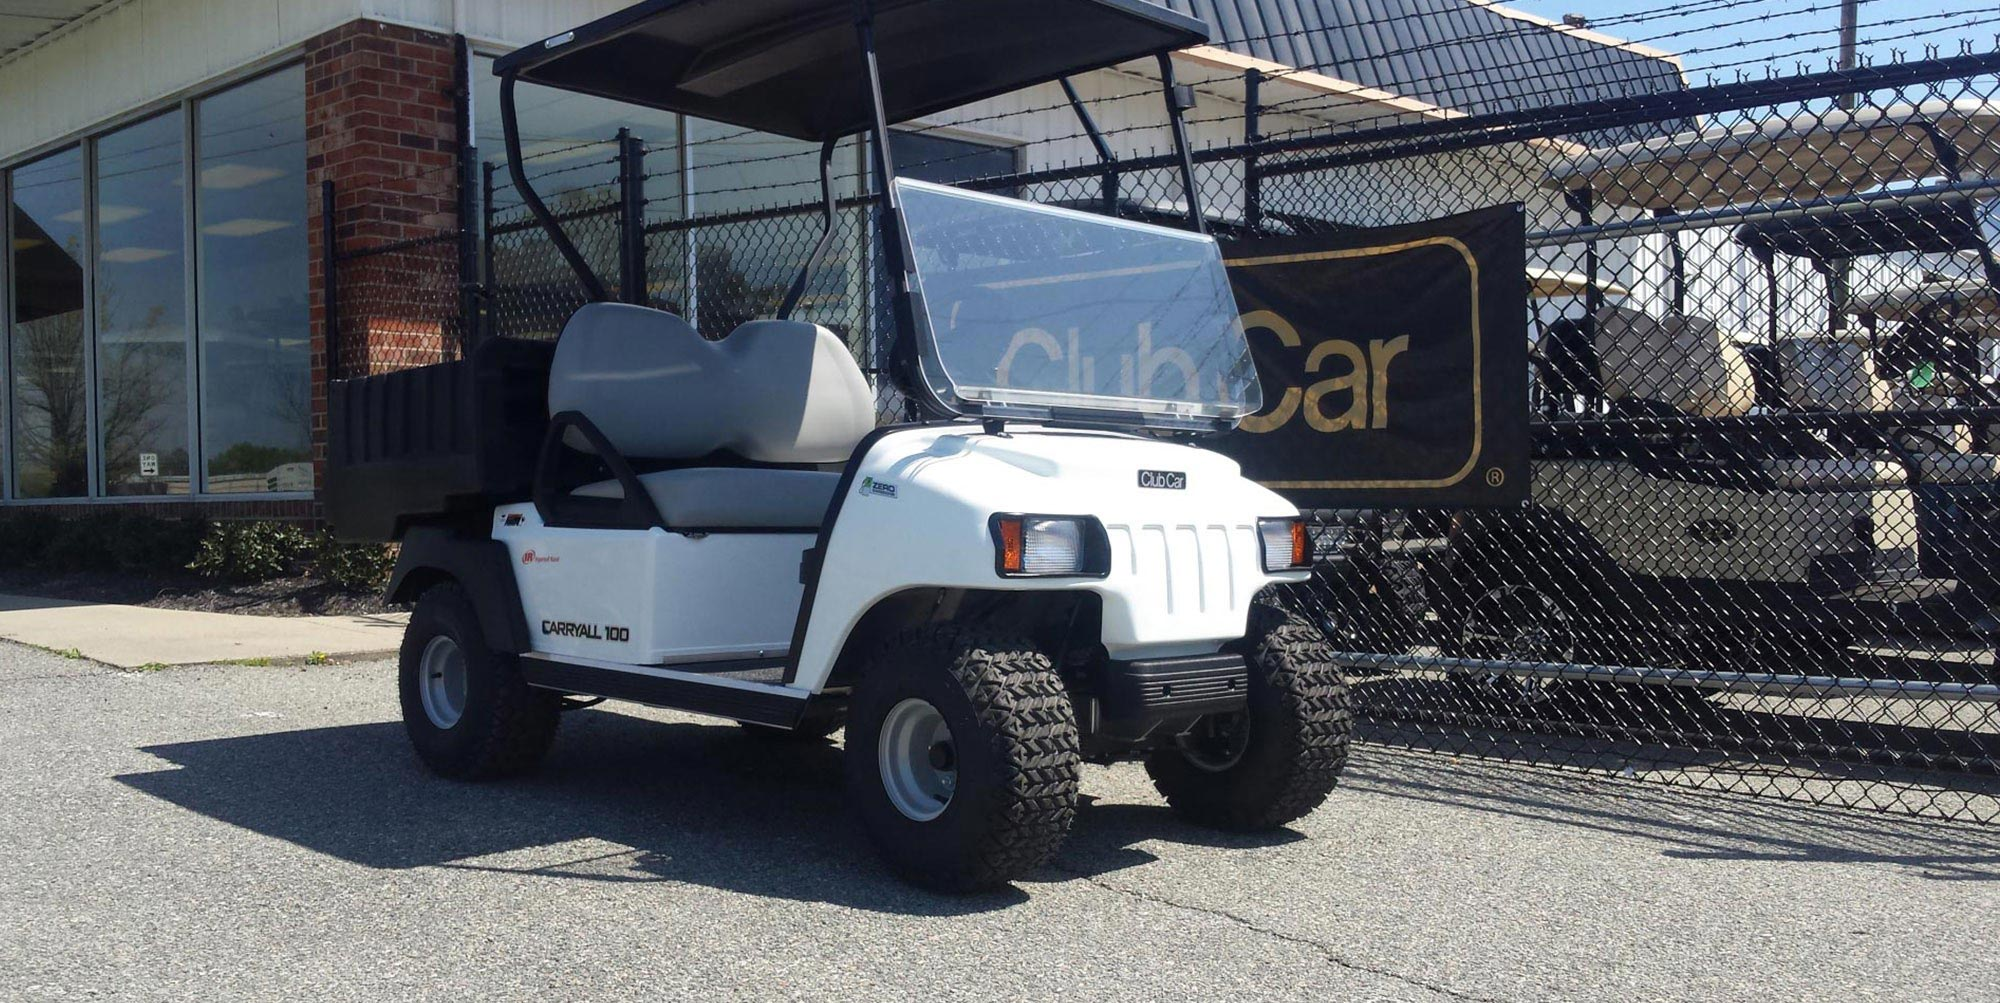 Club Car Carryall 100